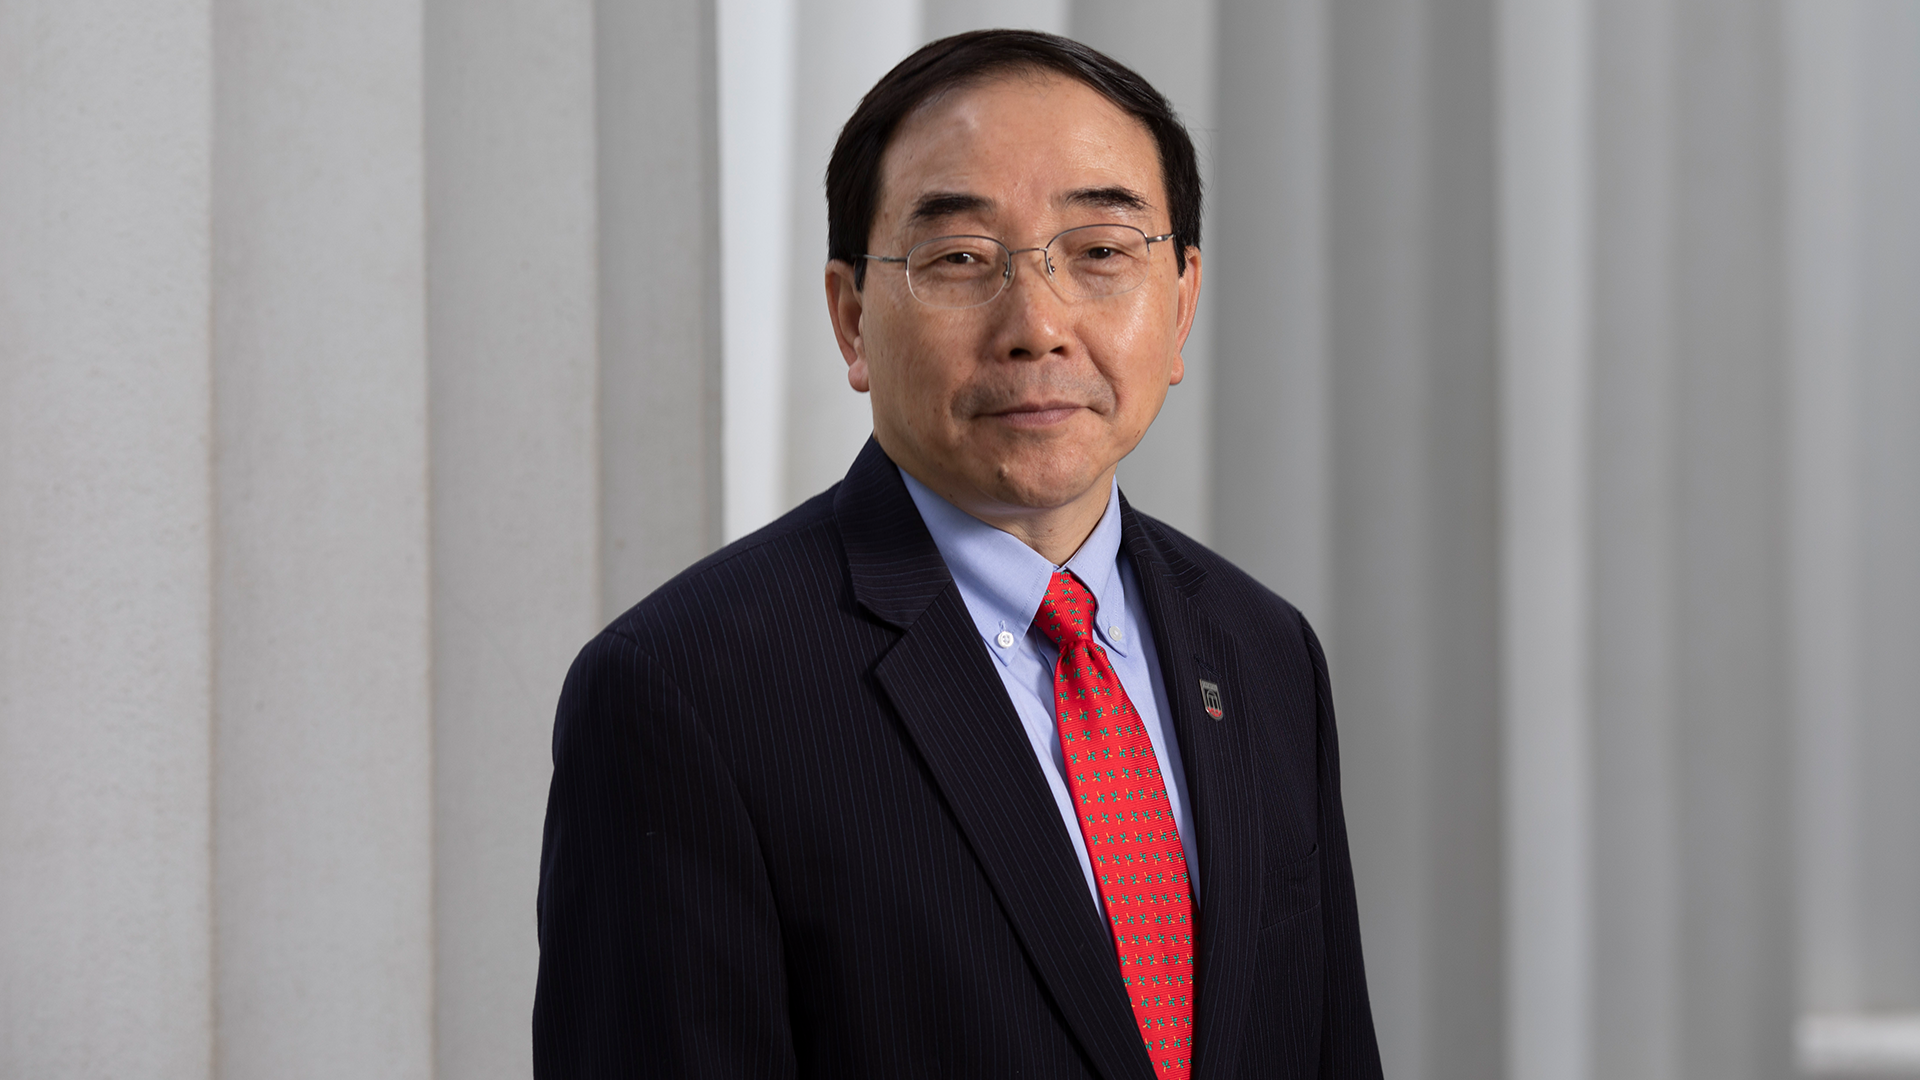 Georgia's S. Jack Hu to Chair SEC Provosts Group